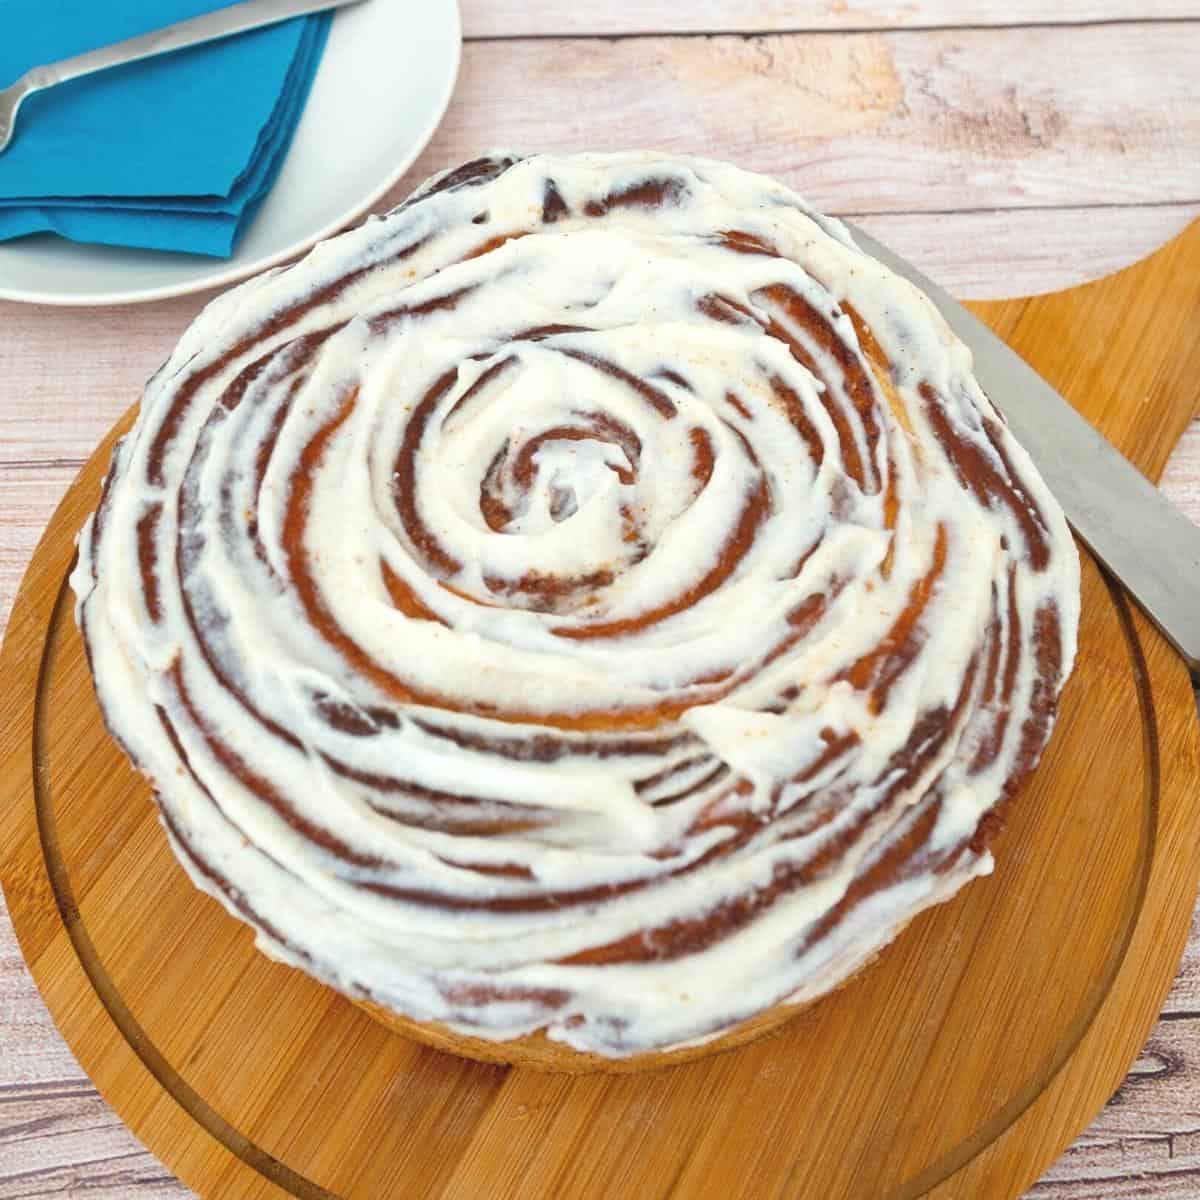 A large cinnamon roll on a wooden board.